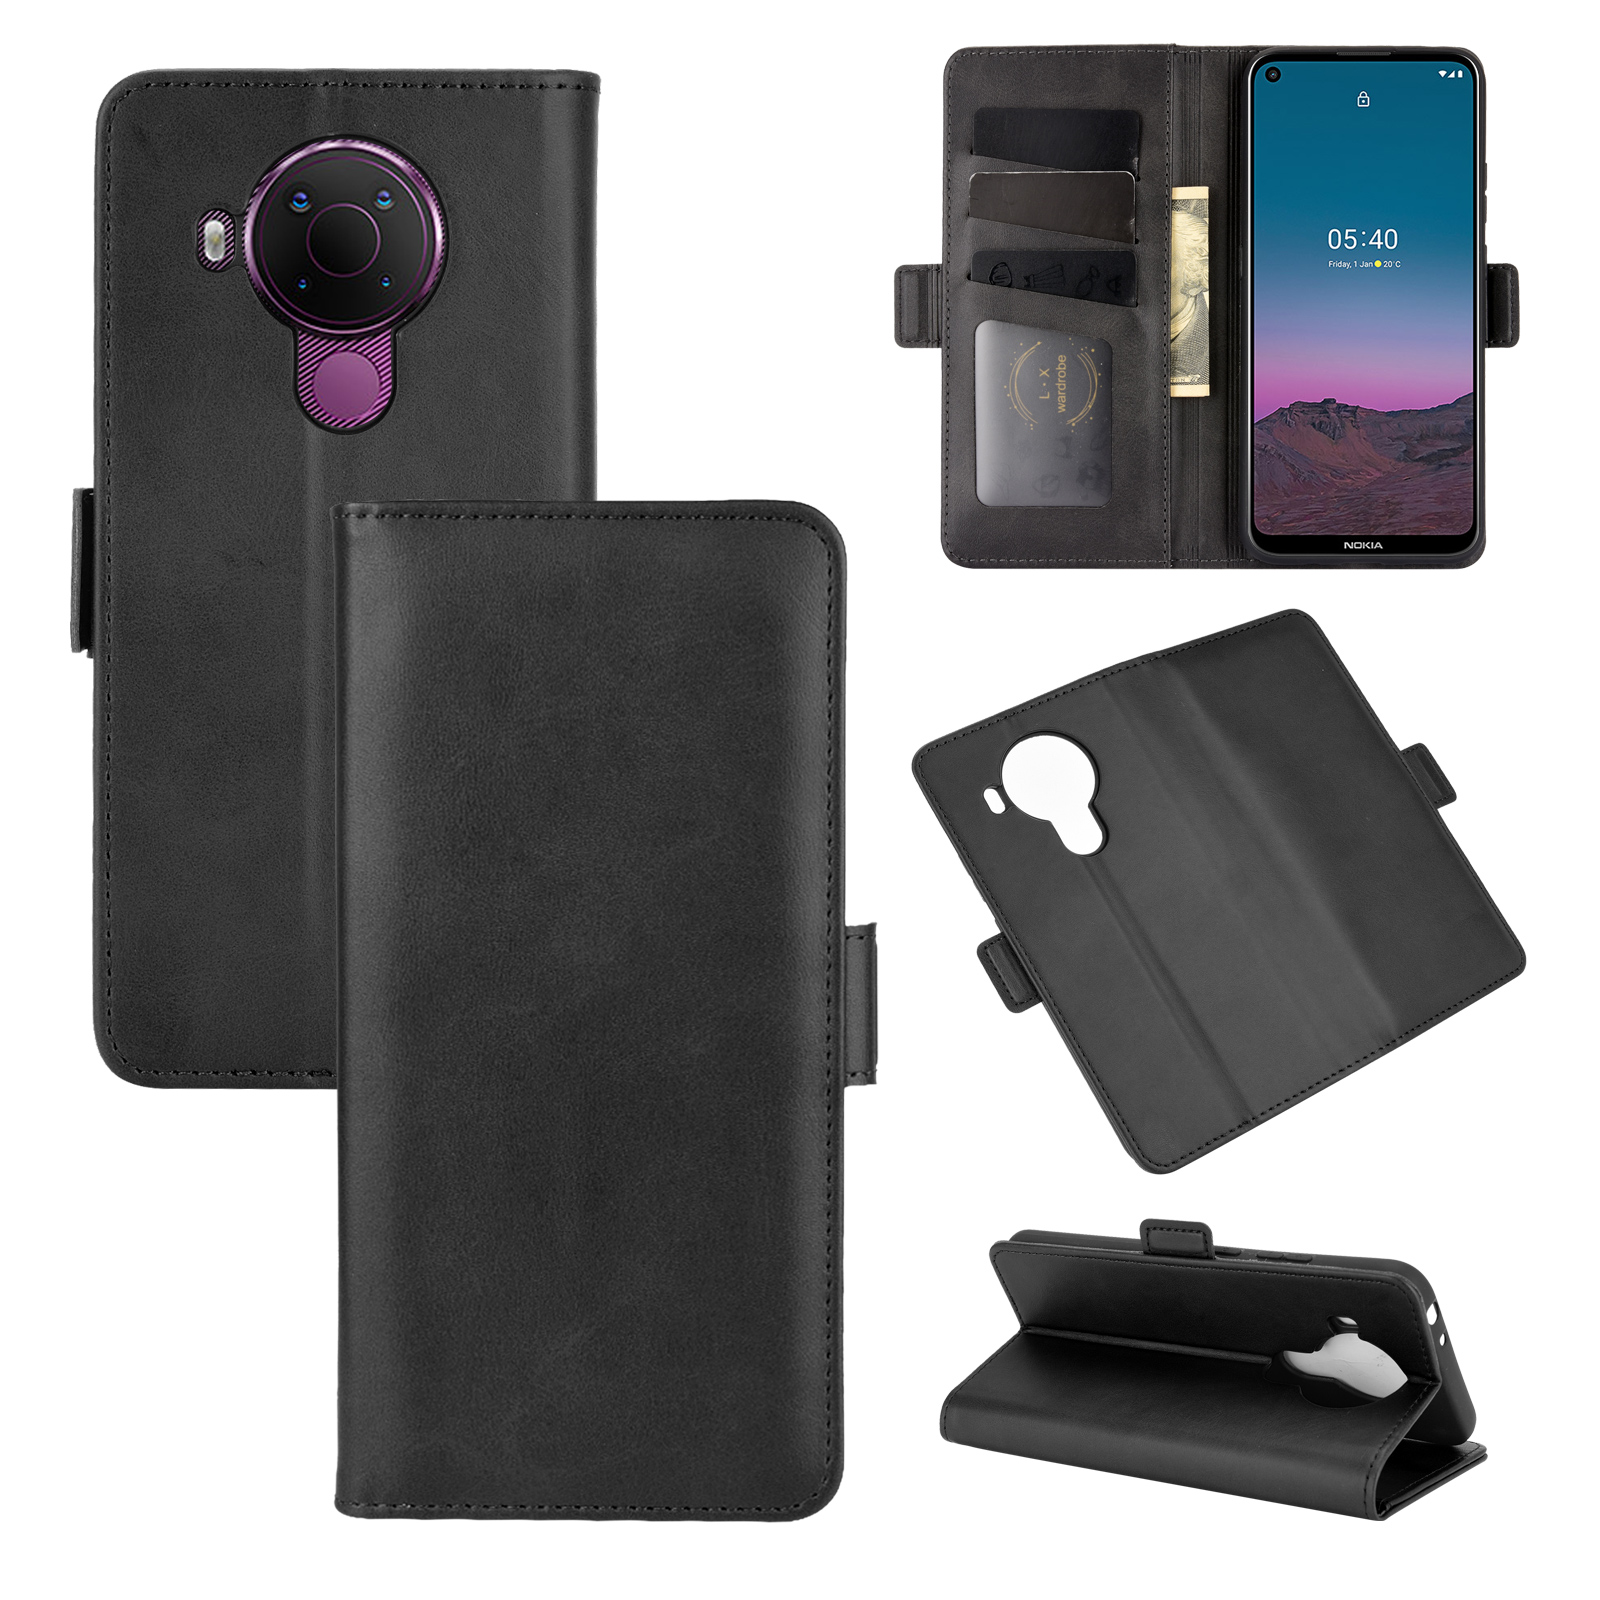 Case For Nokia 5.4 Leather Wallet Flip Cover Vintage Magnet Phone Case For Nokia 5.4 Coque